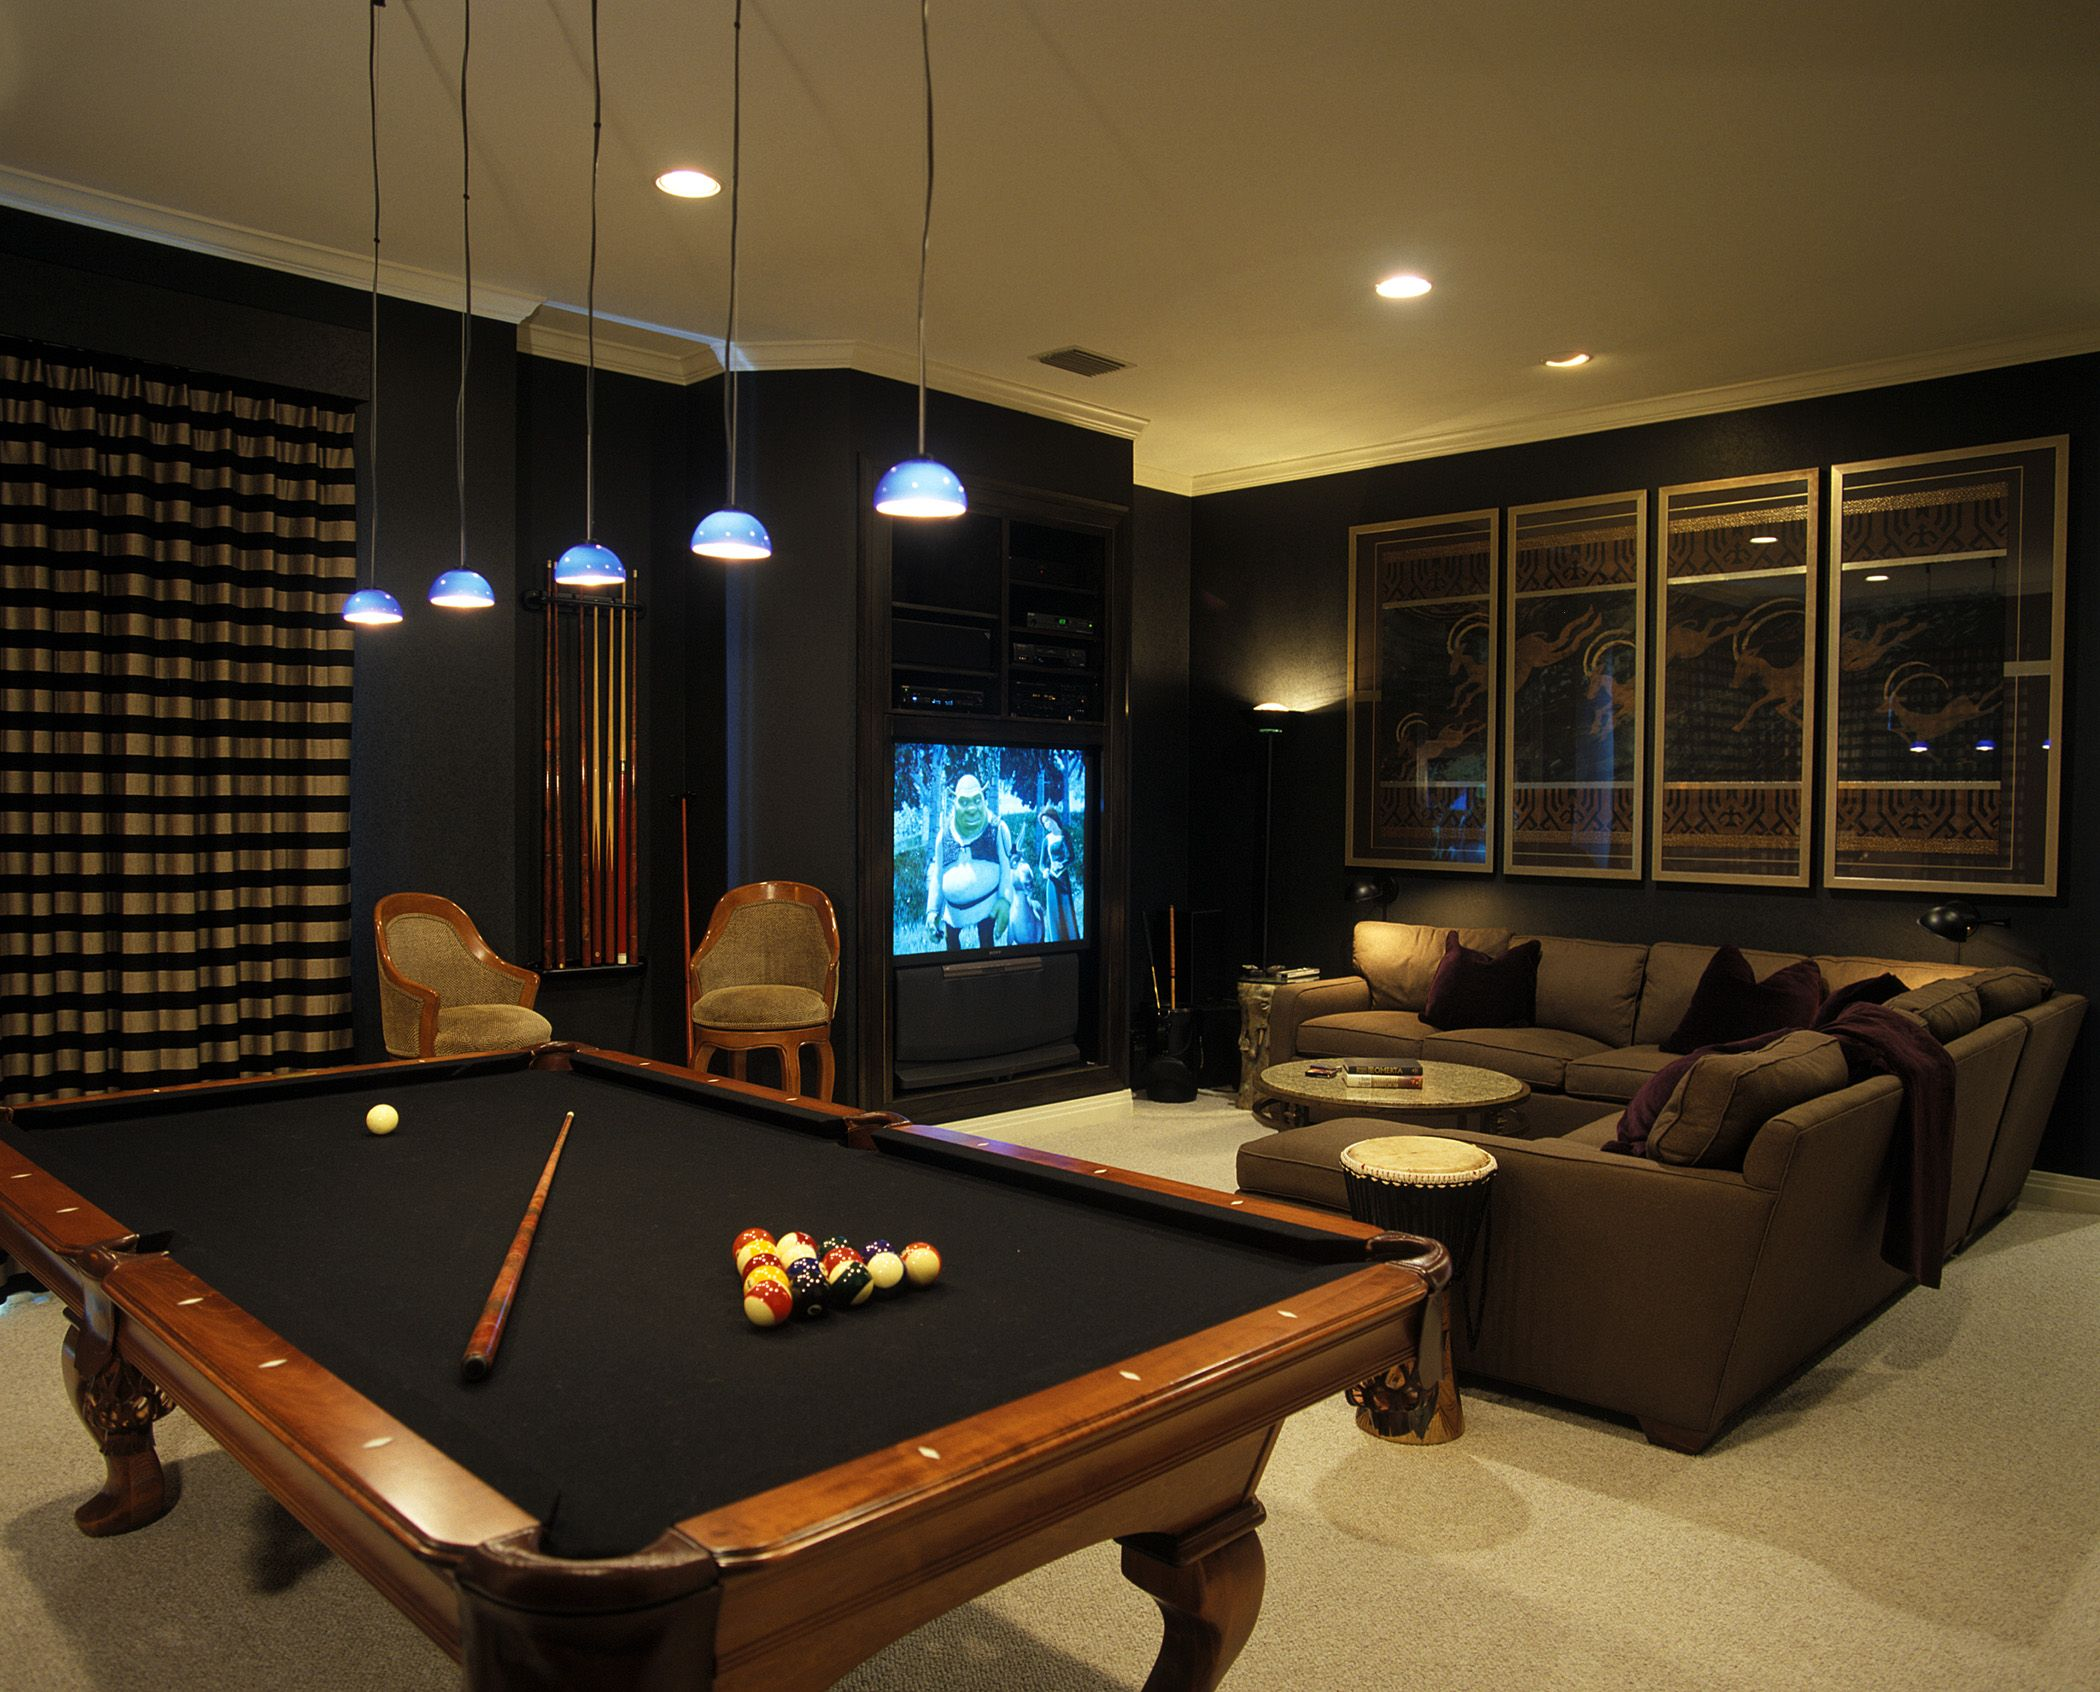 Good Dark Media Room With Pool Table Part 17